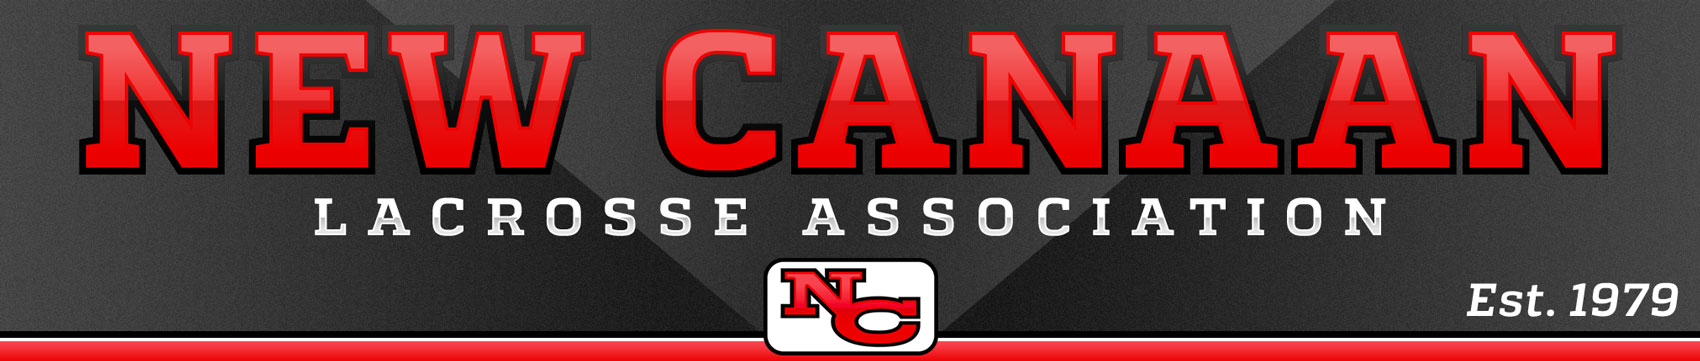 New Canaan Lacrosse Association,P O Box 1671,New Canaan, Ct  06840Tax ID #06-1592201Non-Profit 501(c)3 Organization, Lacrosse, Goal, Field